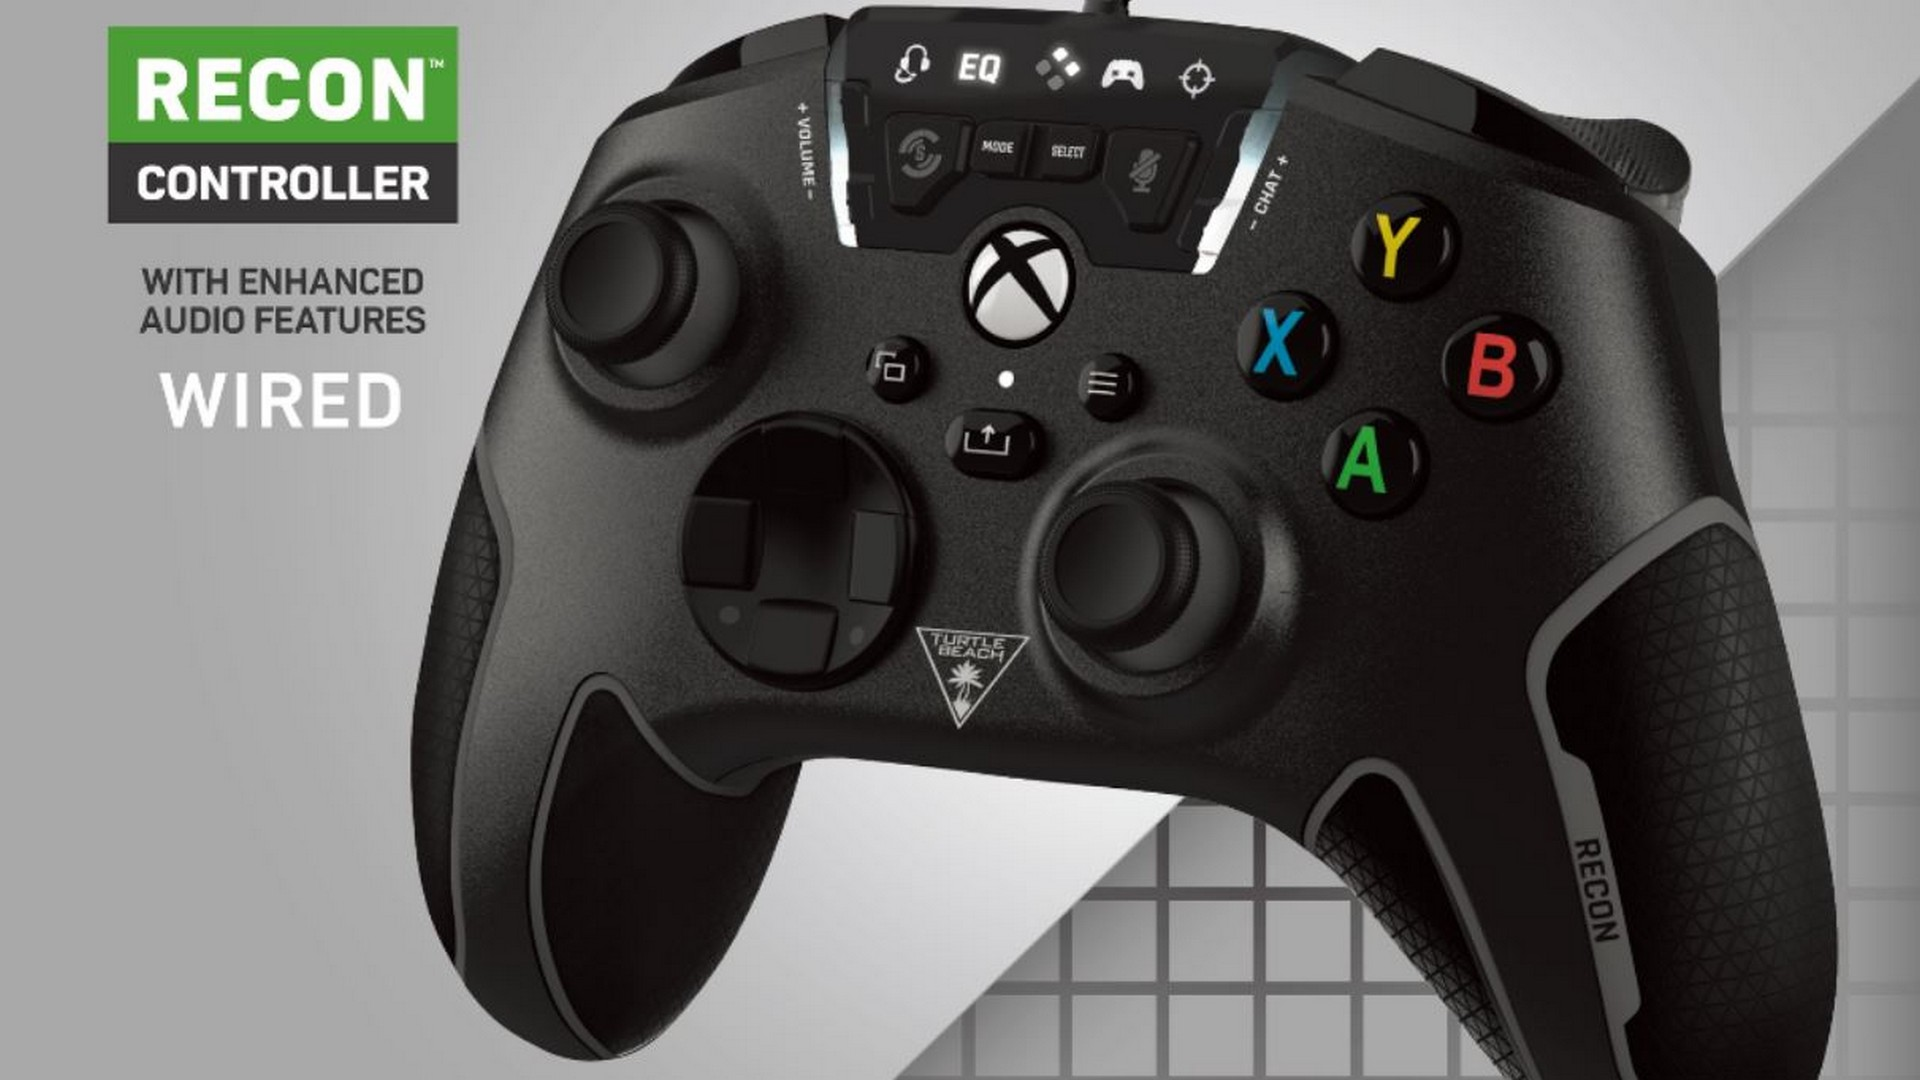 Turtle Beach's Award Winning Recon Controller For Xbox, Now Available At Australian Retailers